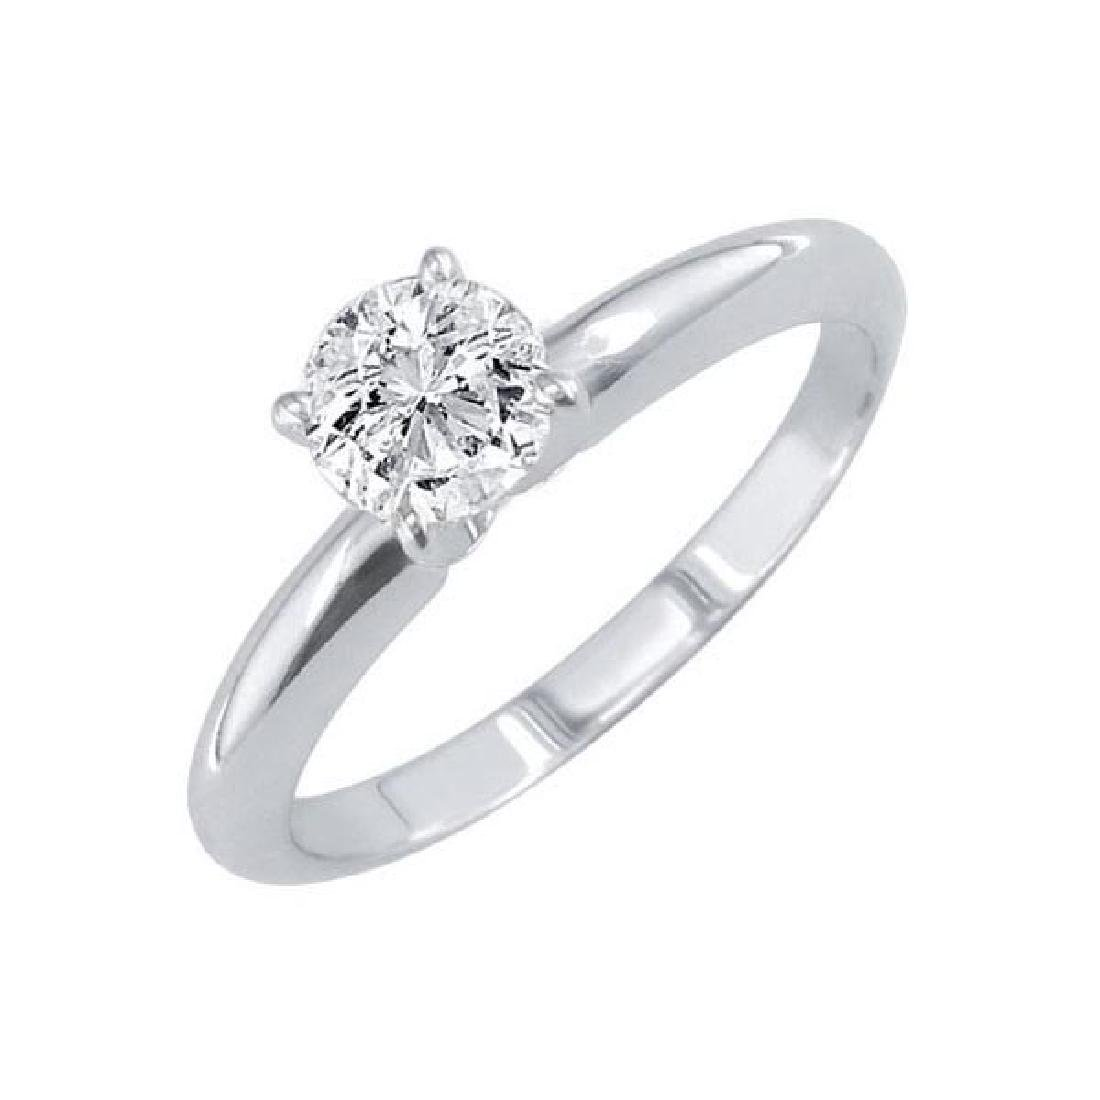 Certified 1.01 CTW Round Diamond Solitaire 14k Ring J/S